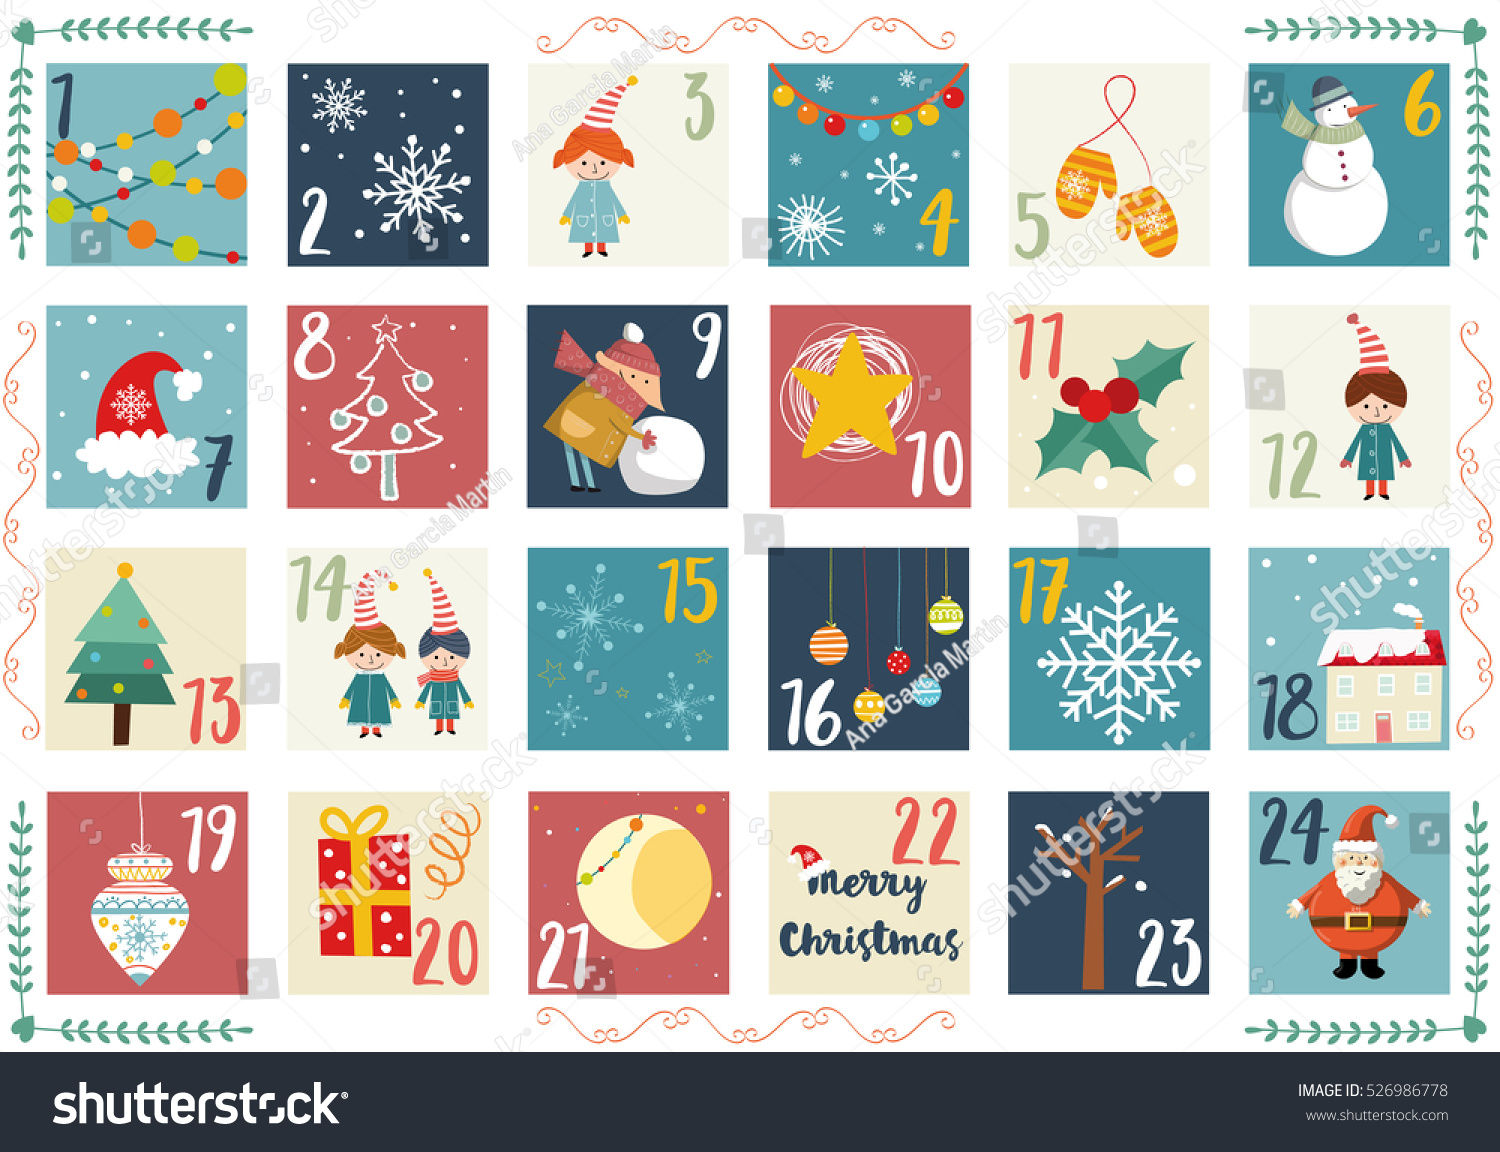 Christmas Calendar Illustration : Vector advent calendar christmas poster printable stock